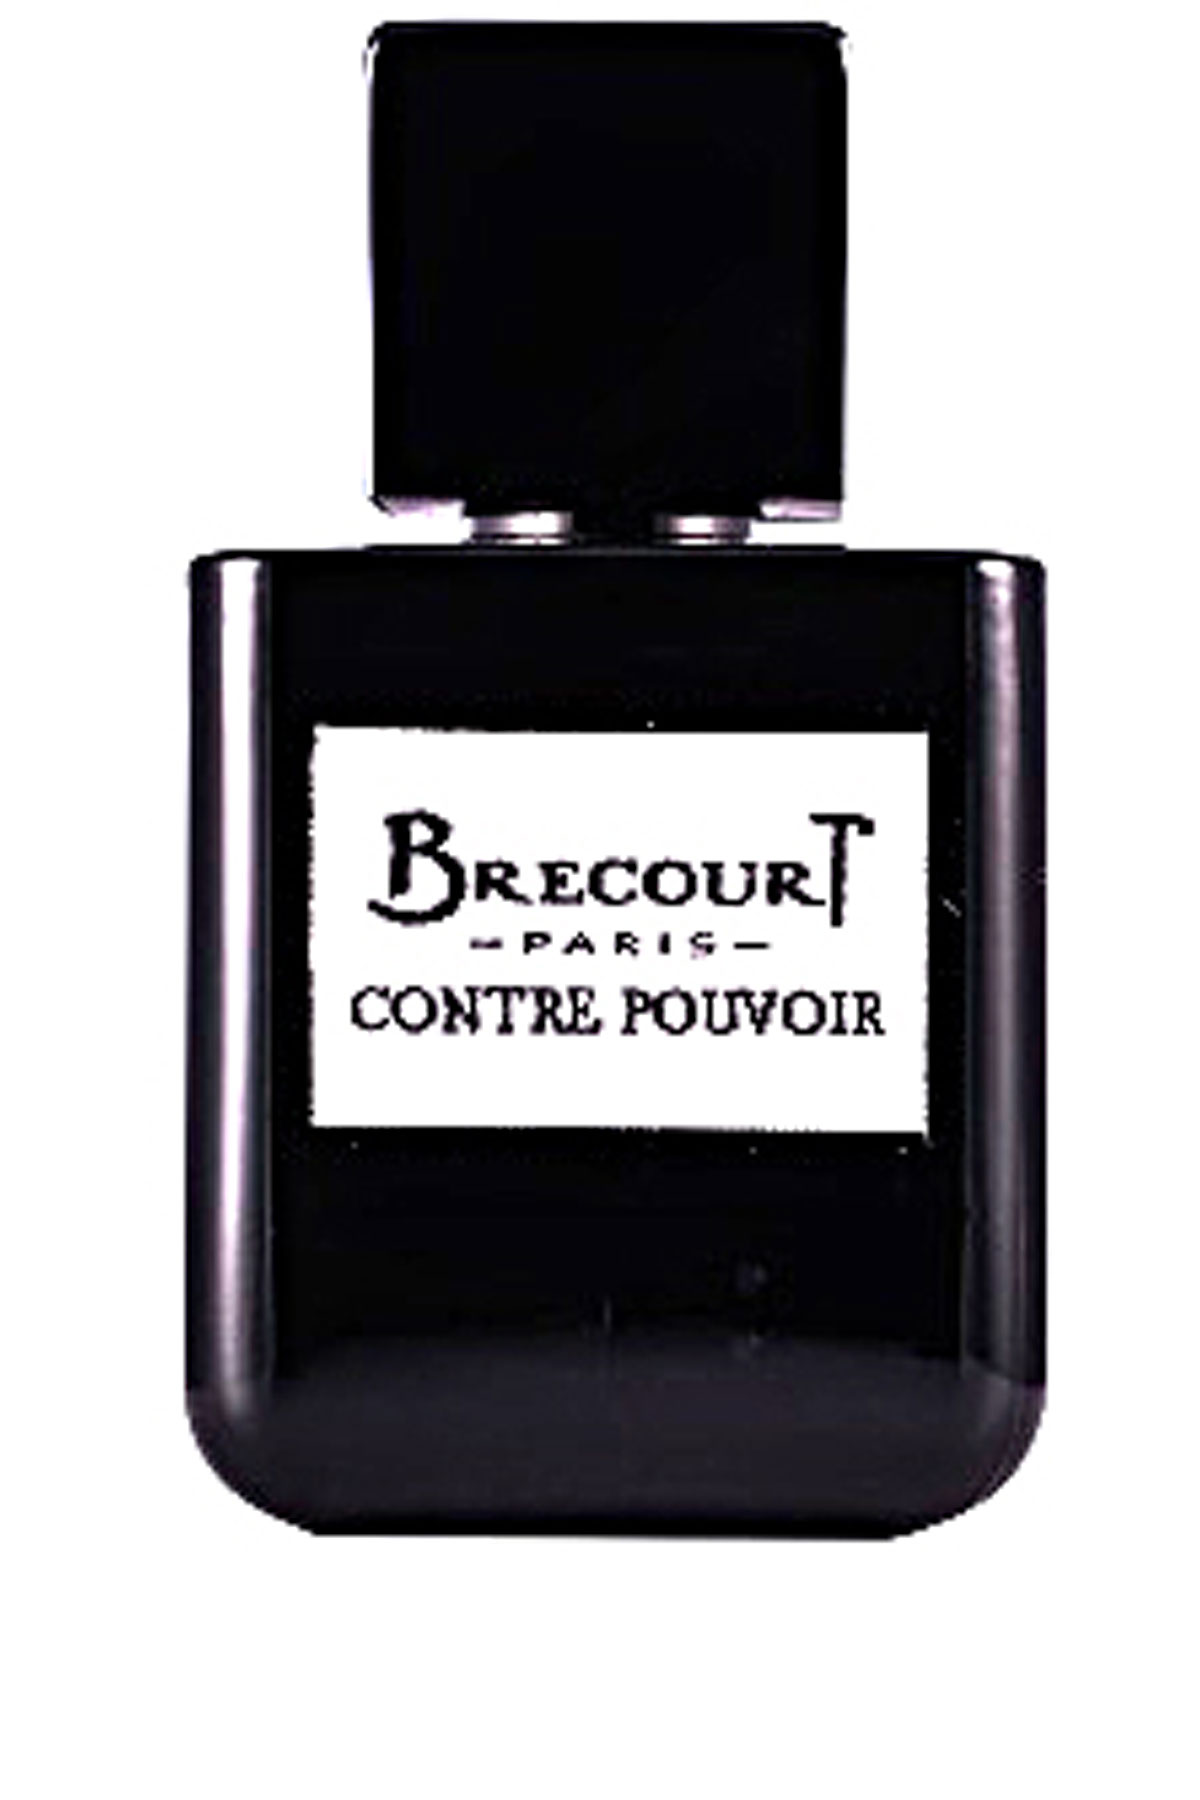 Brecourt Fragrances for Men, Contre Pouvoir Eau De Parfum 50 Ml, 2019, 50 ml